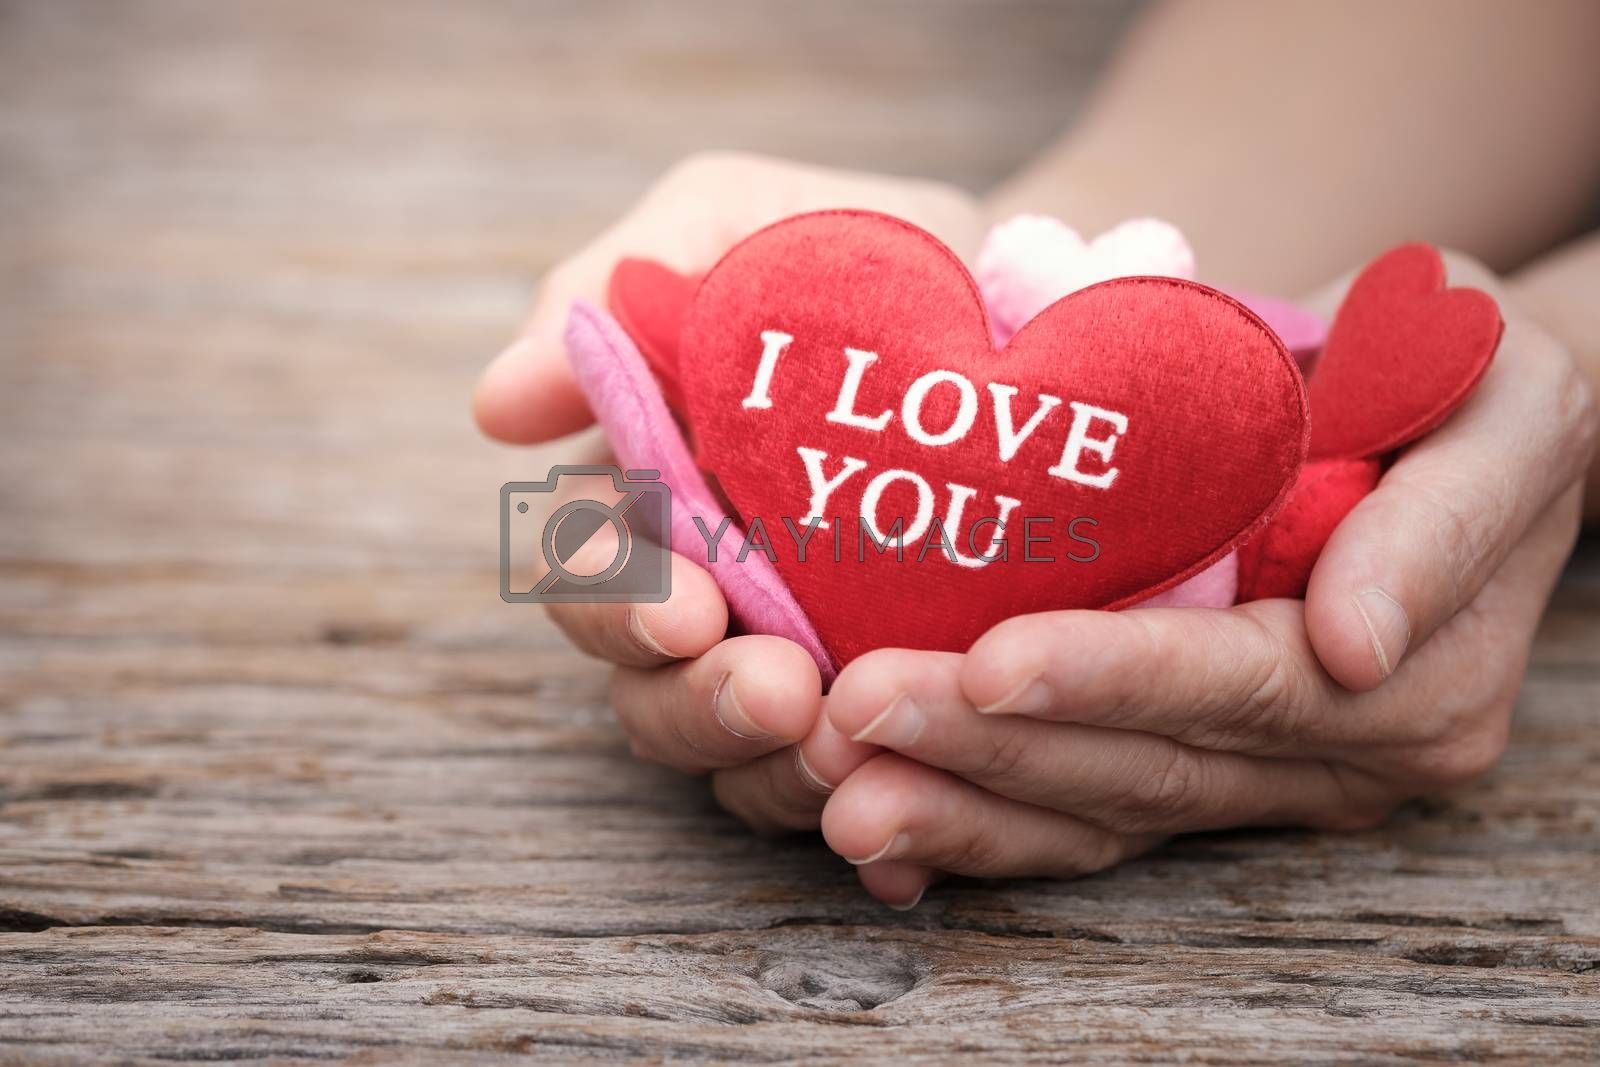 Red pillow heart shape in hand' woman on wooden background with space to write. Valentine concept, Vintage tone, AF point selection.